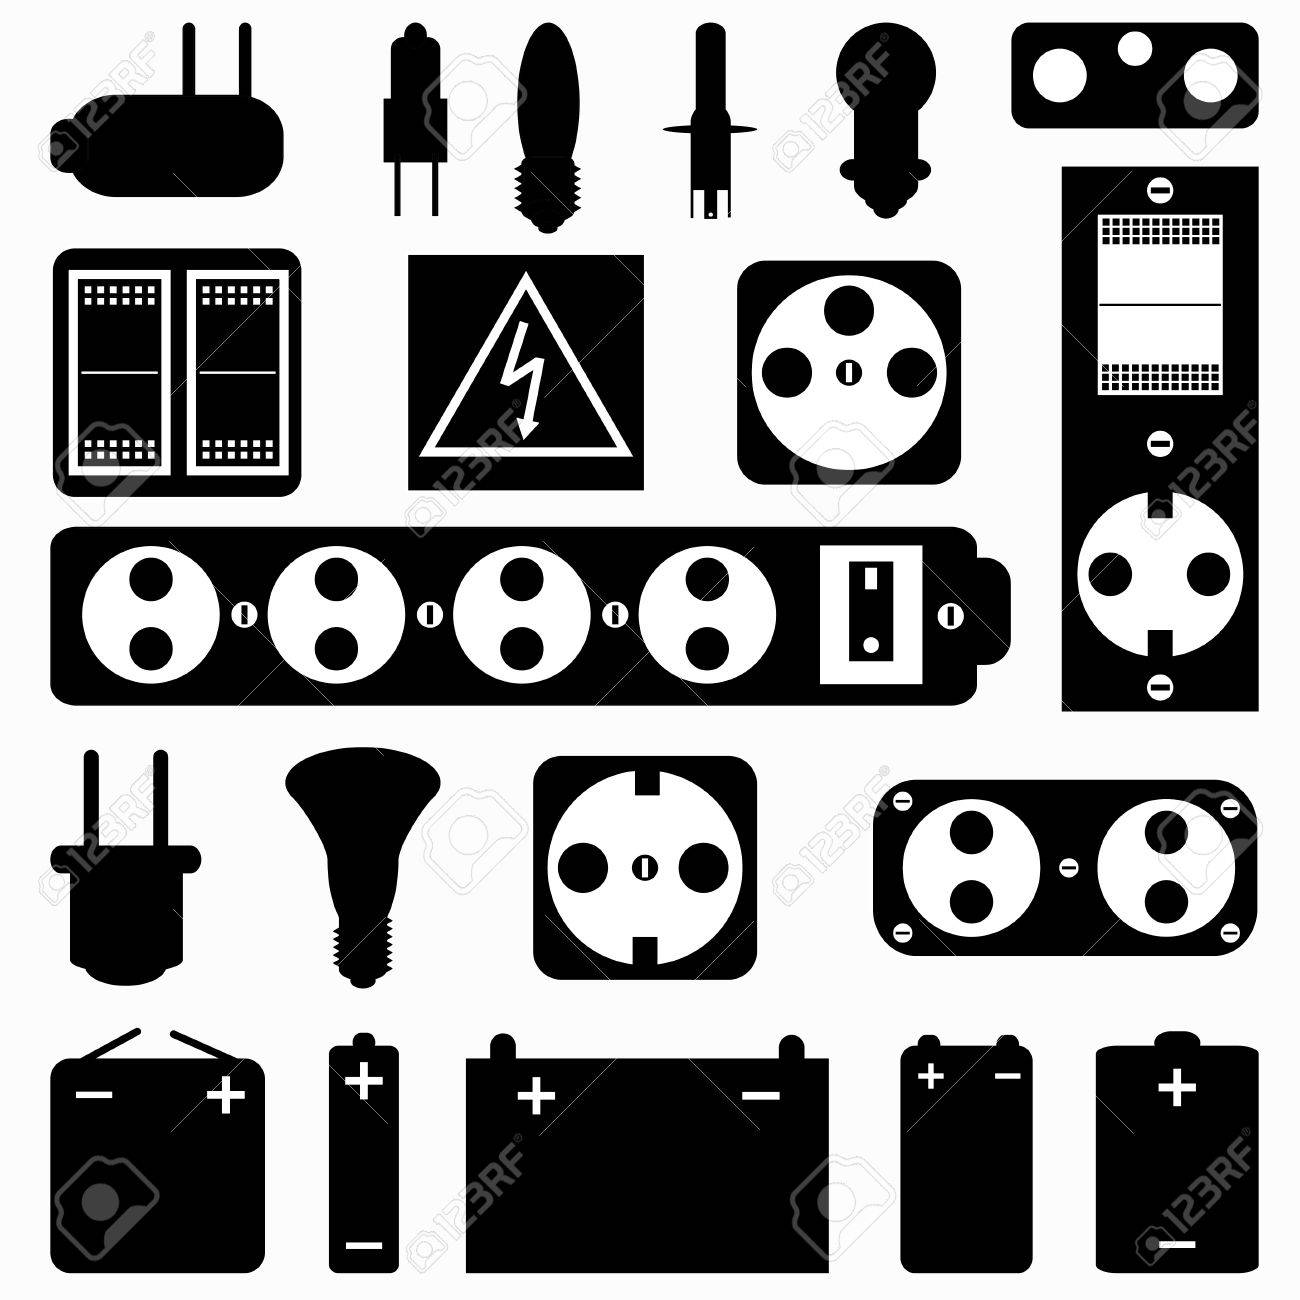 Electrical Equipment Monochrome Collection Of Symbols Royalty Free ...